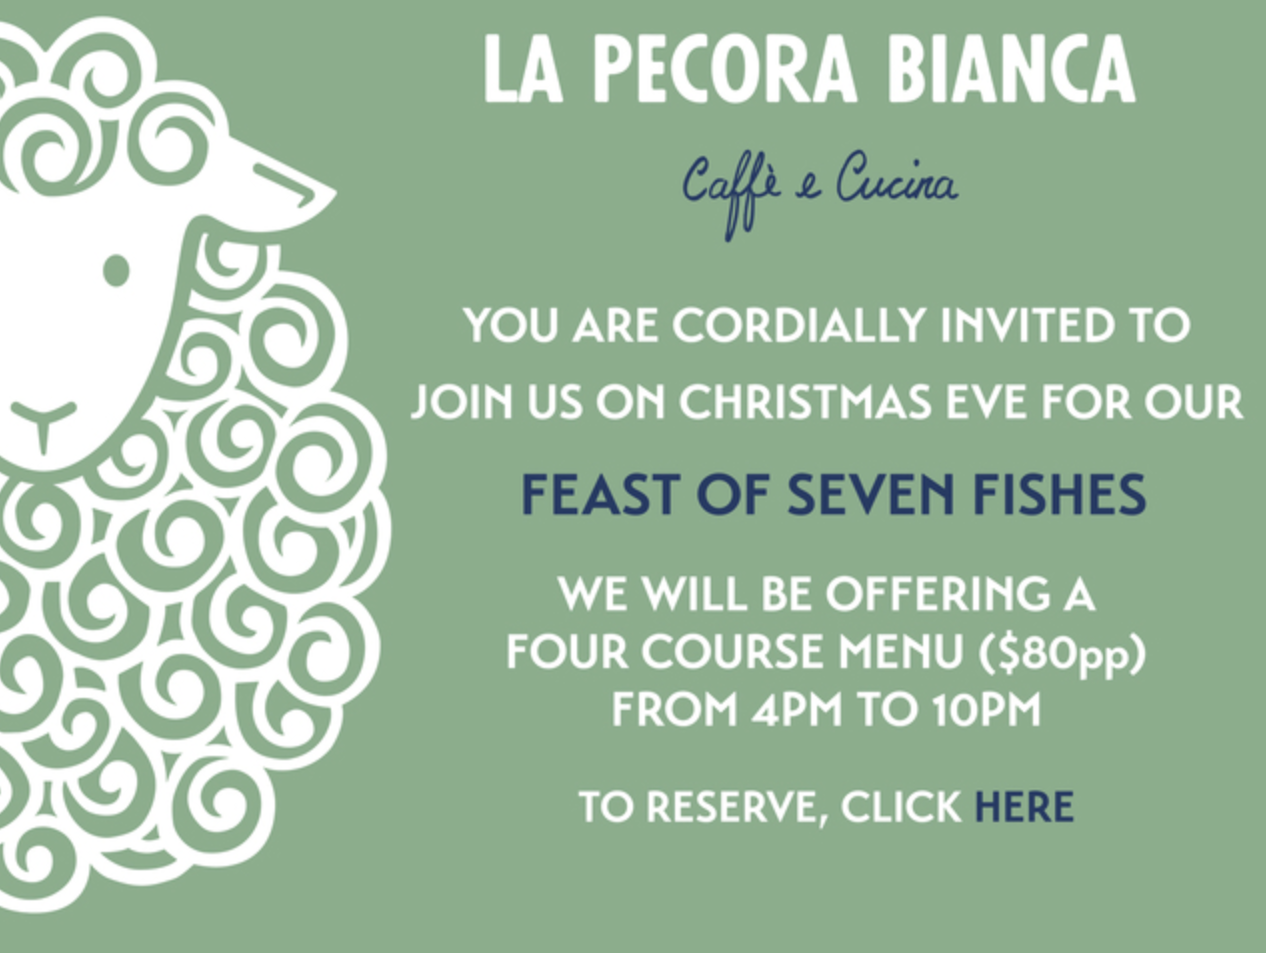 feast of seven fishes la pecora bianca for an italian style christmas eve